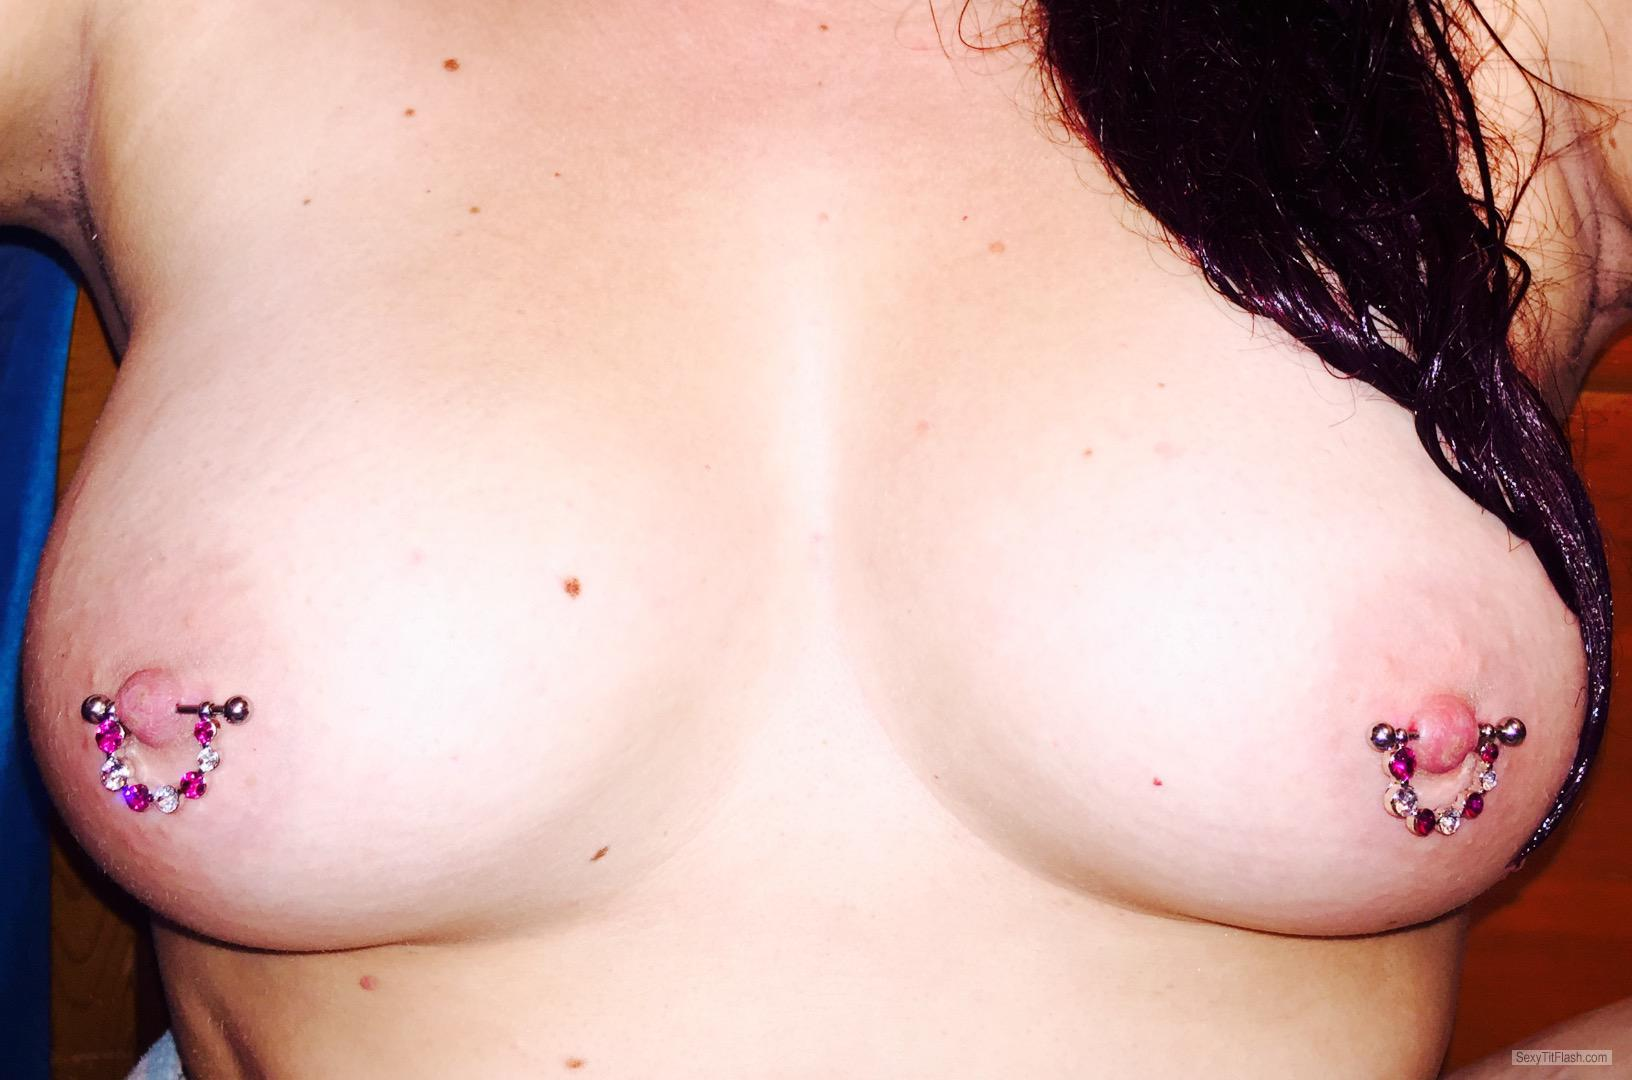 Tit Flash: My Small Tits (Selfie) - Double Trouble from CanadaPierced Nipples